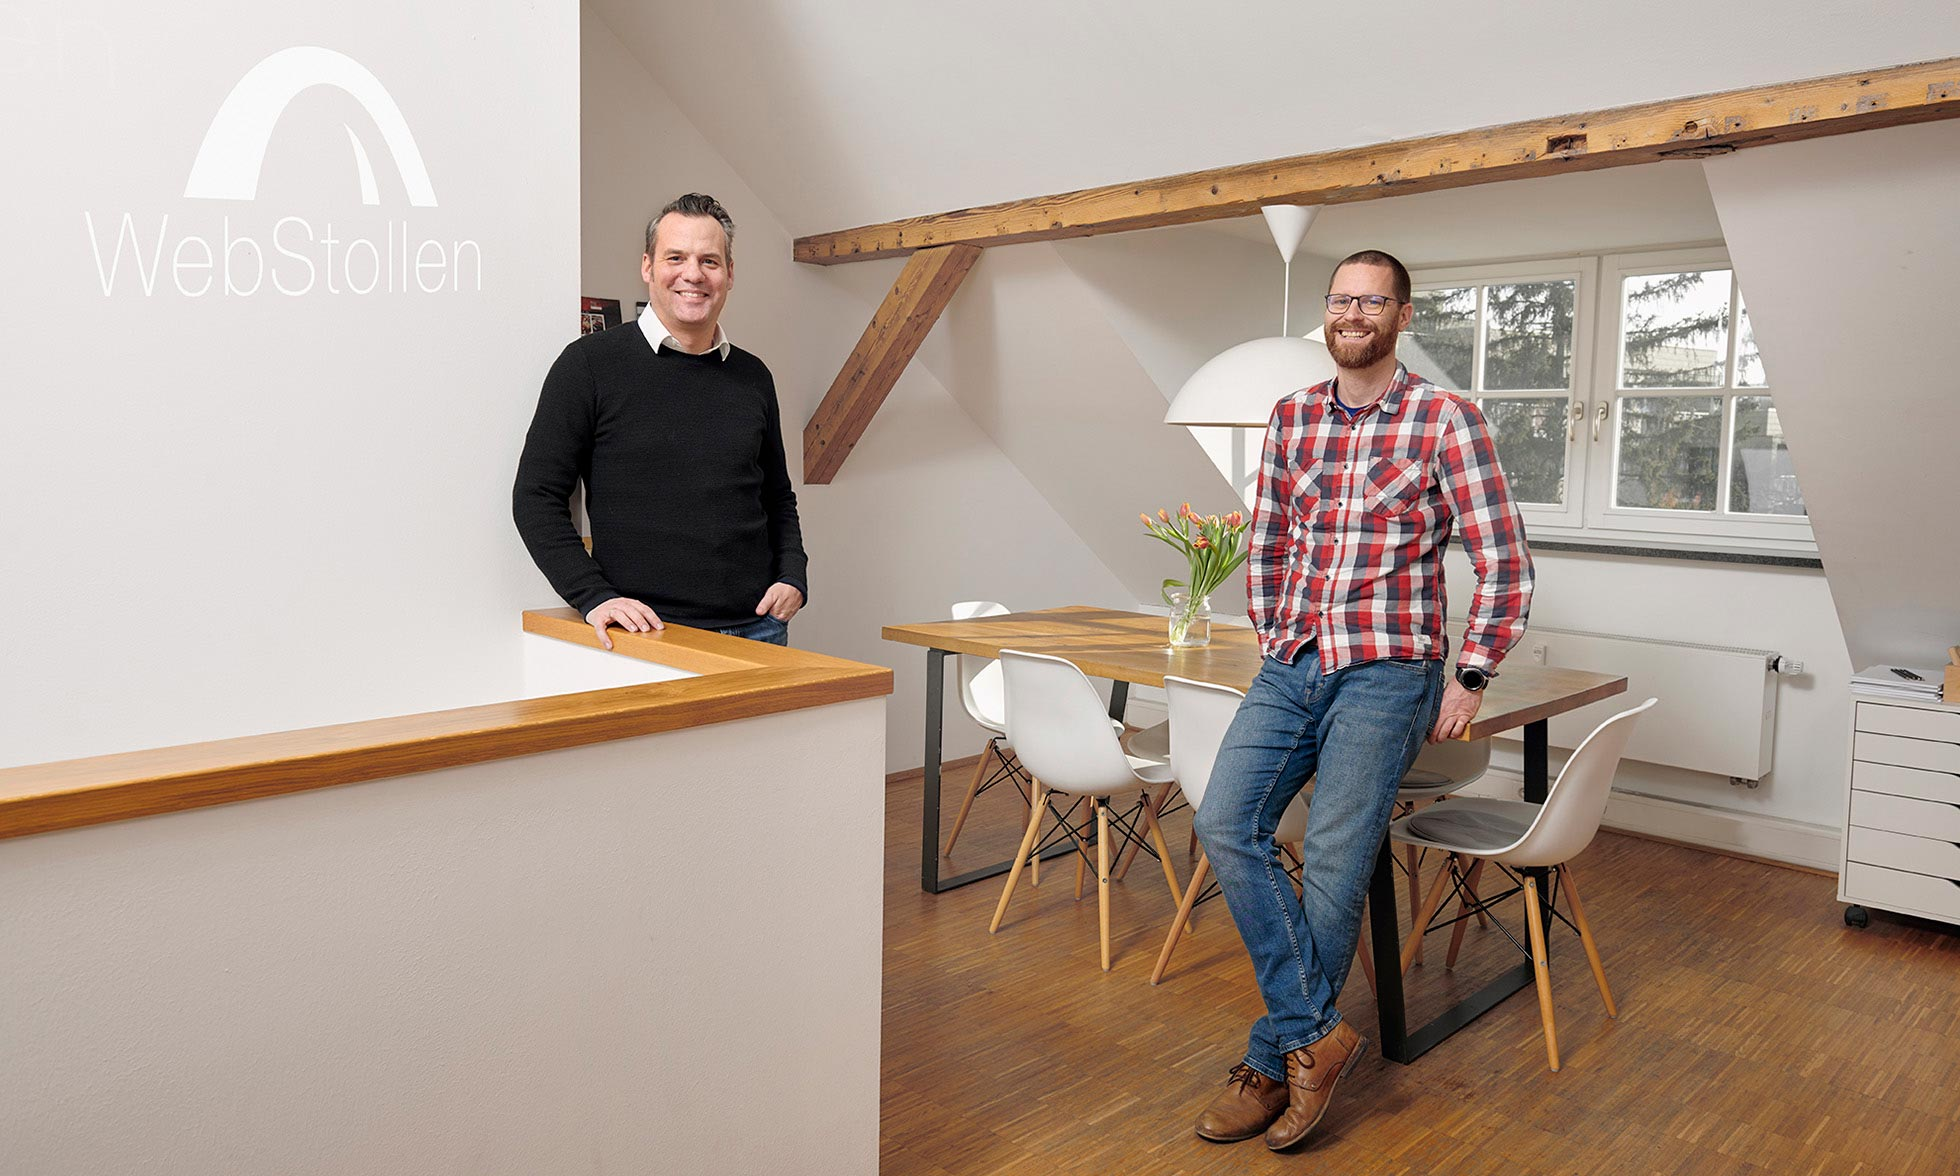 Florian Barbian and Michael Stepanek, founders of WebStollen